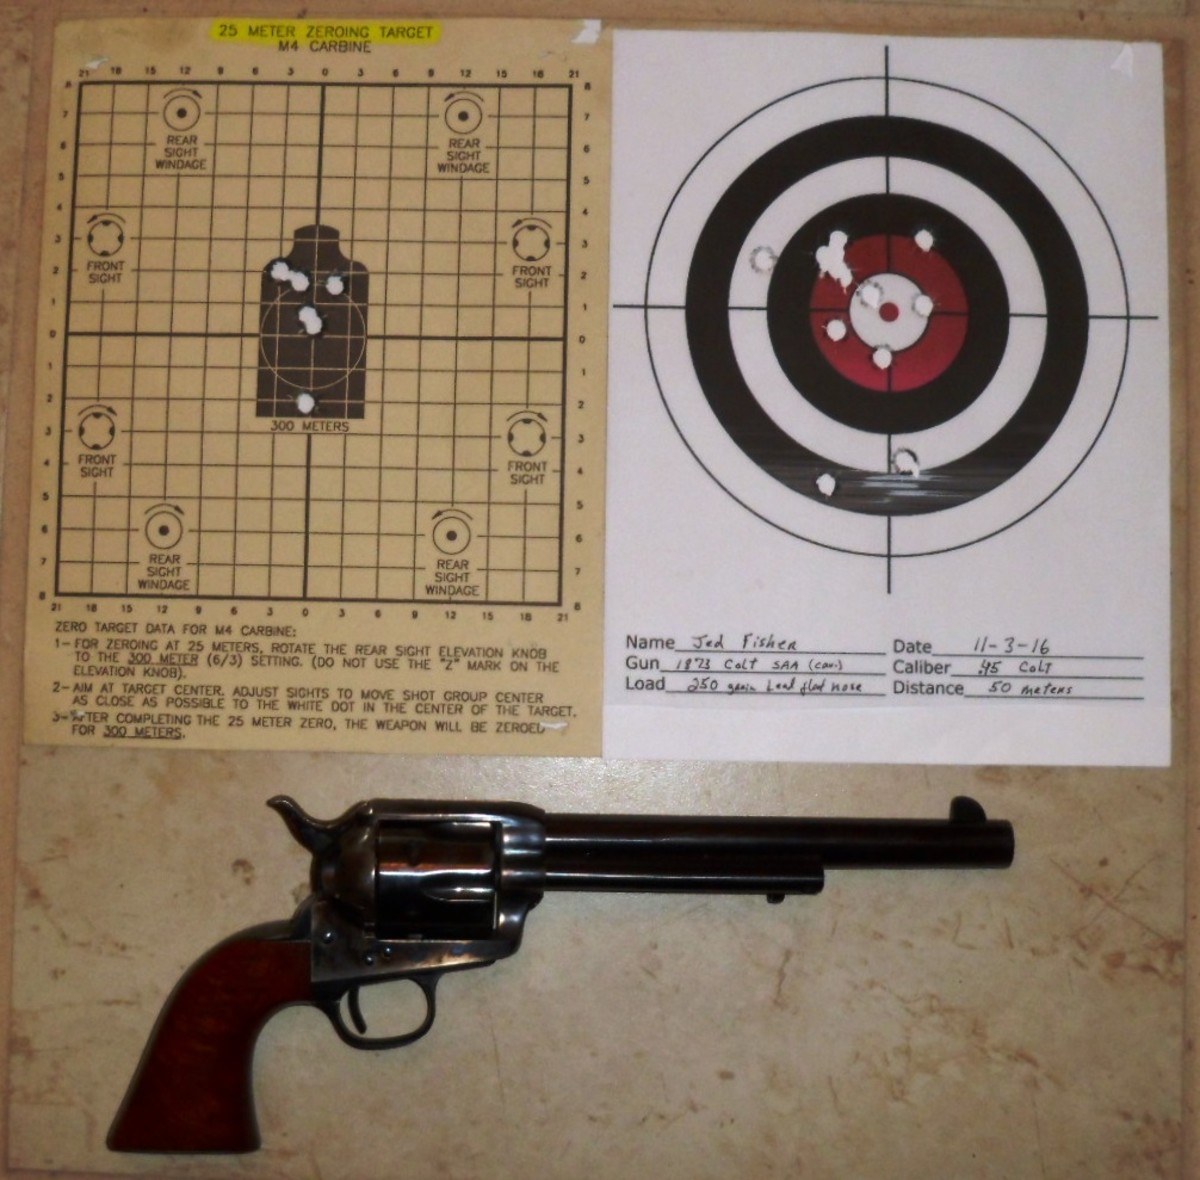 The Colt 45: because shooting them twice is silly!